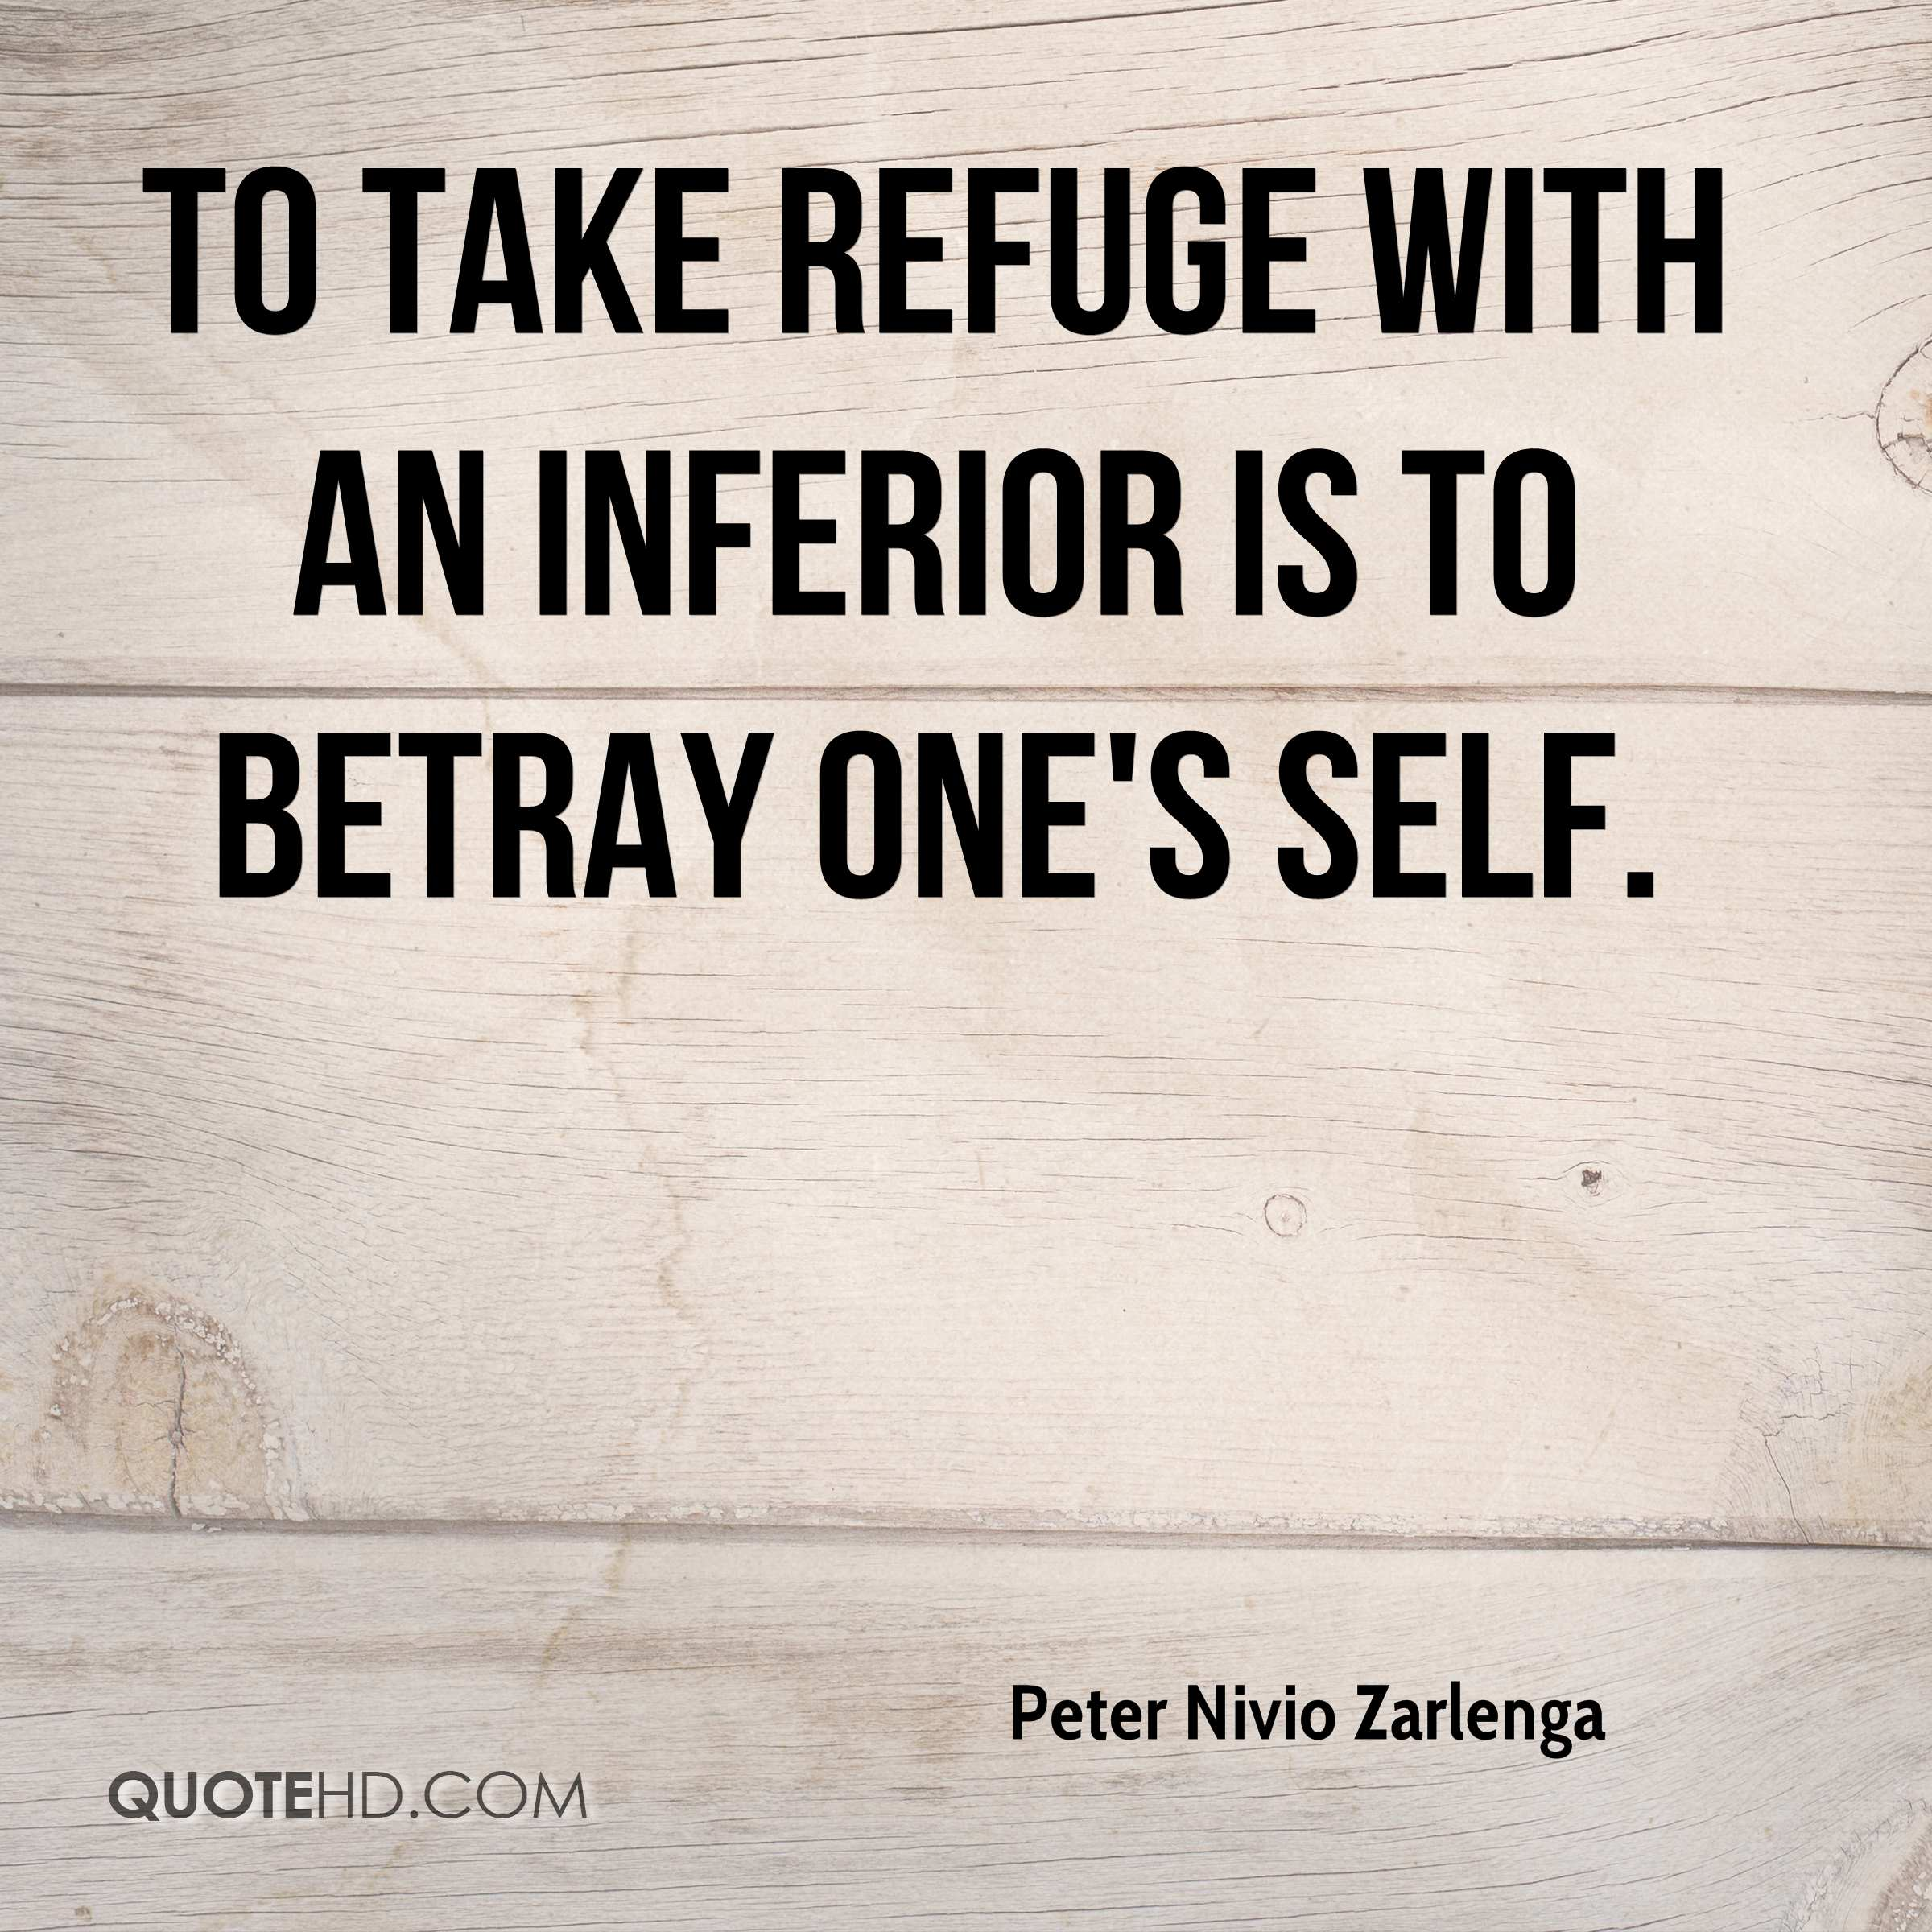 To take refuge with an inferior is to betray one's self.